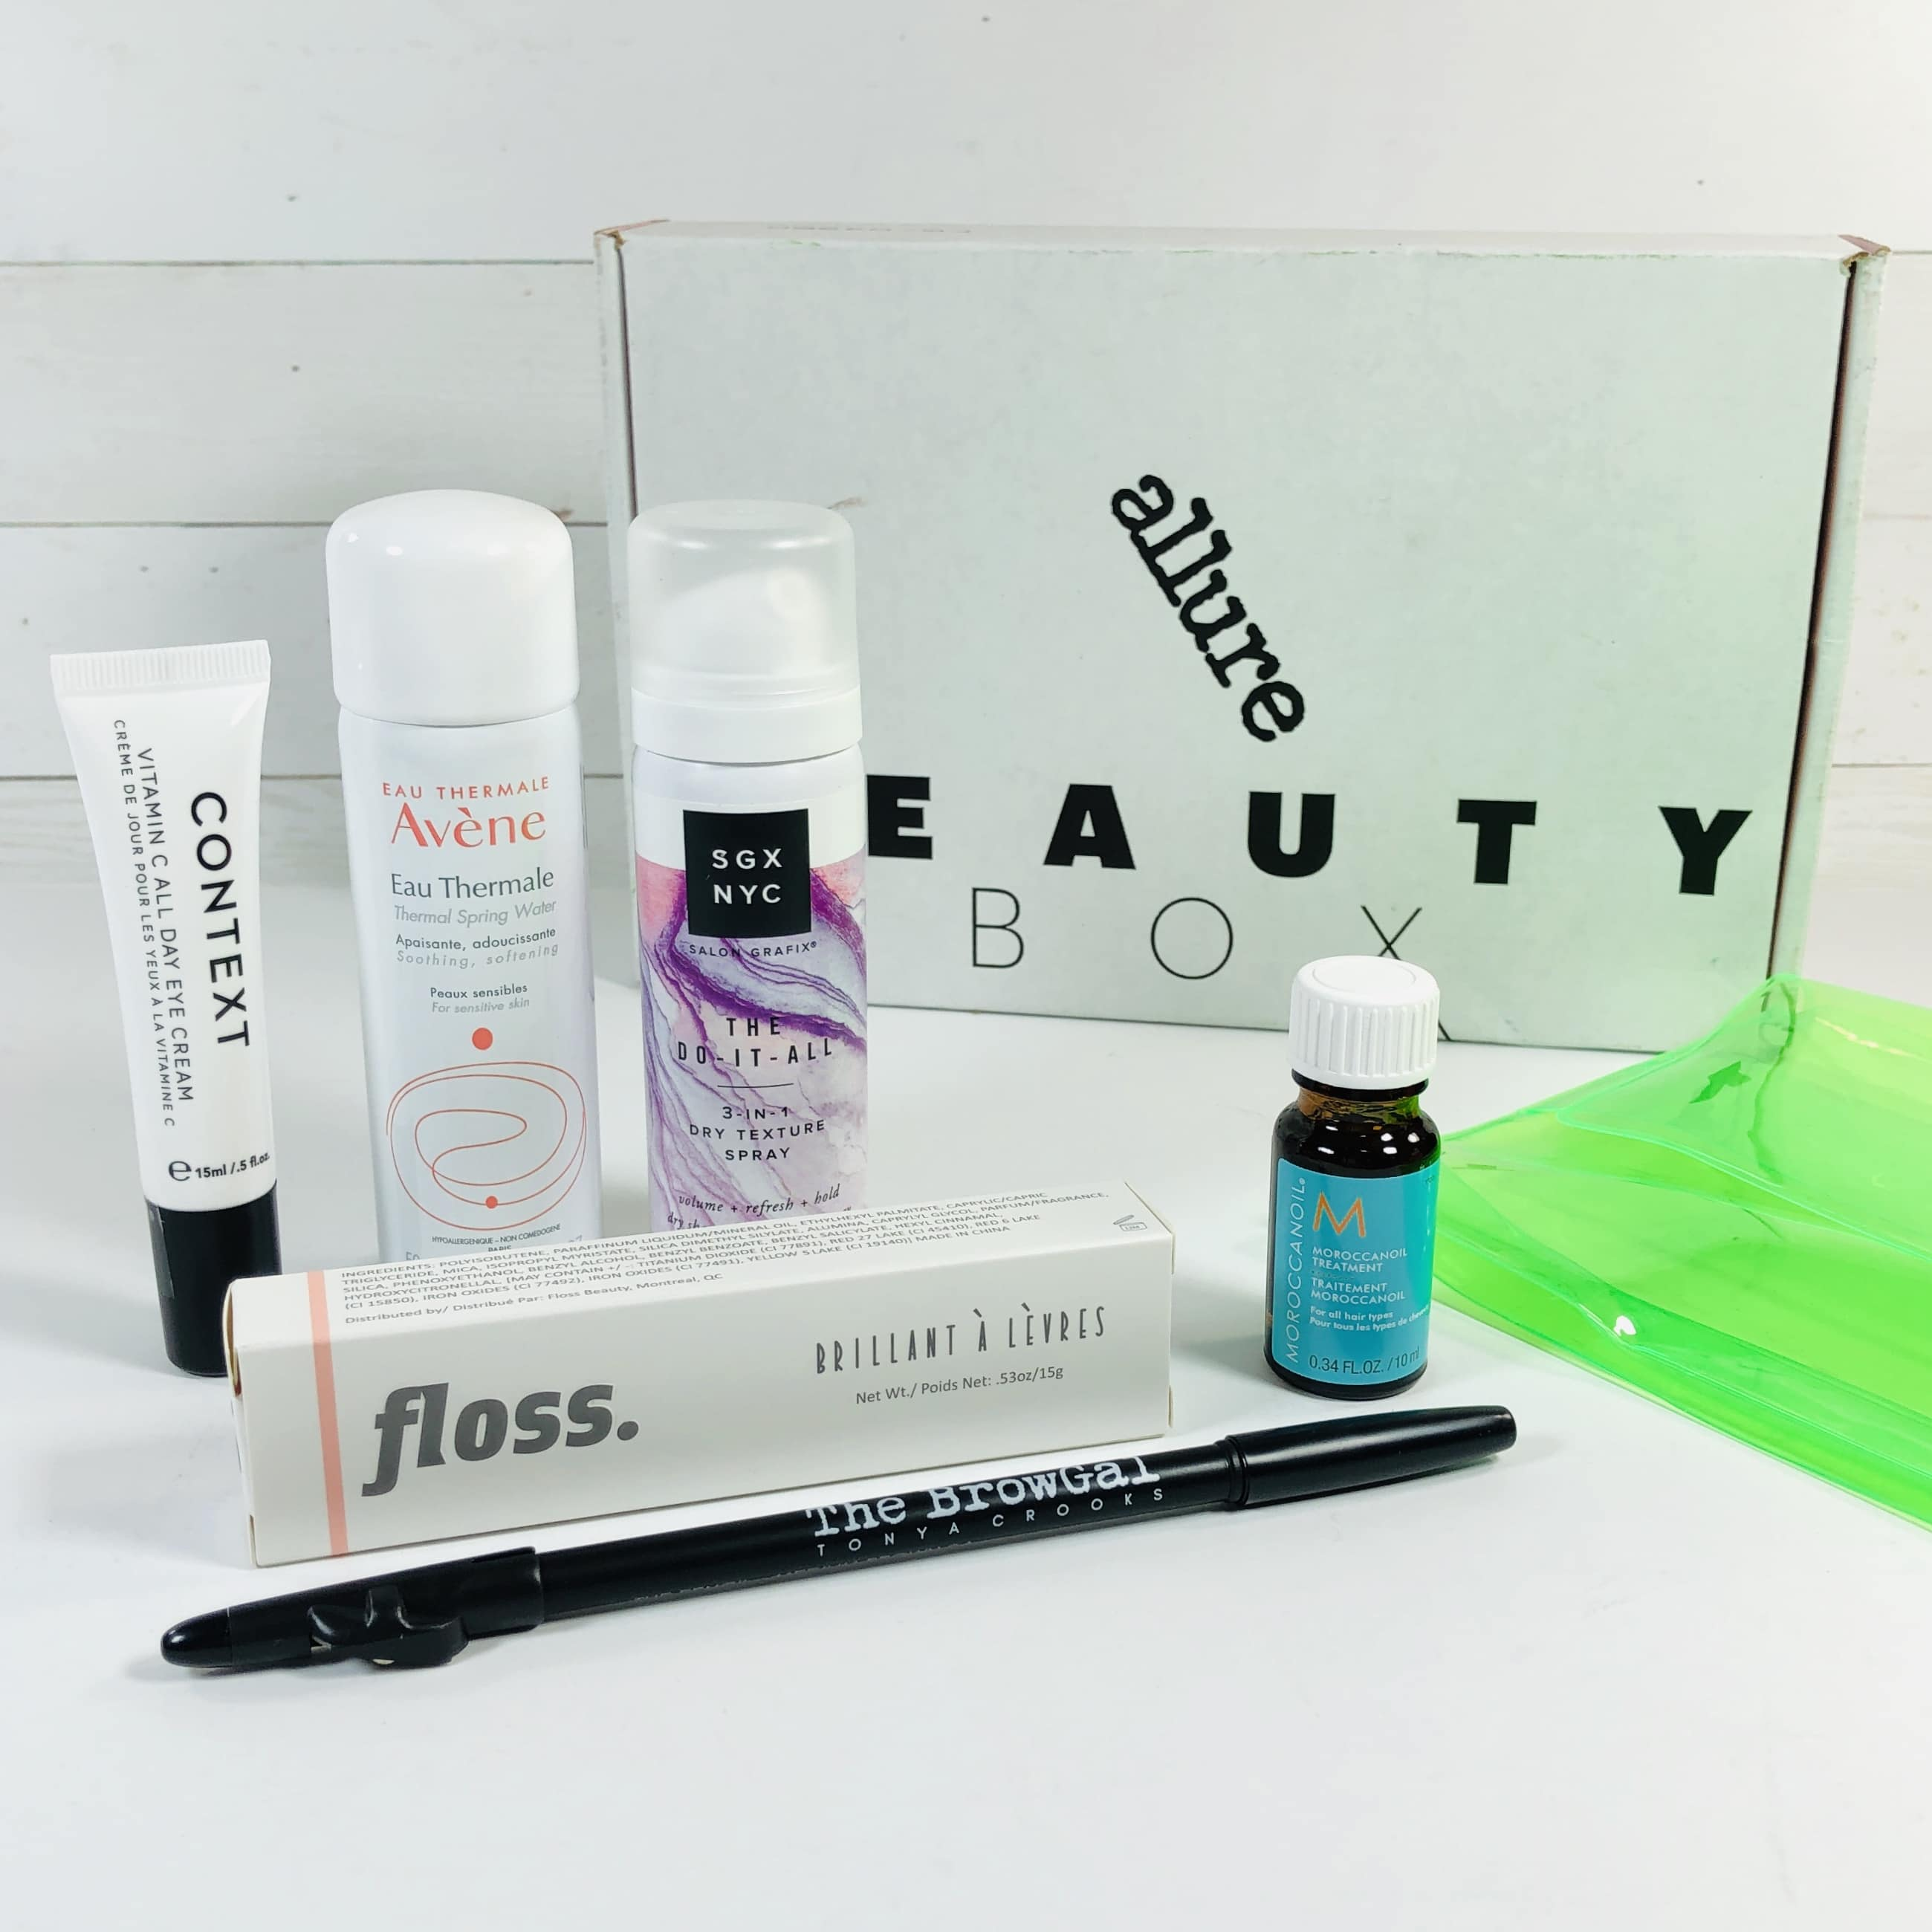 Allure Beauty Box June 2019 Subscription Box Review & Coupon